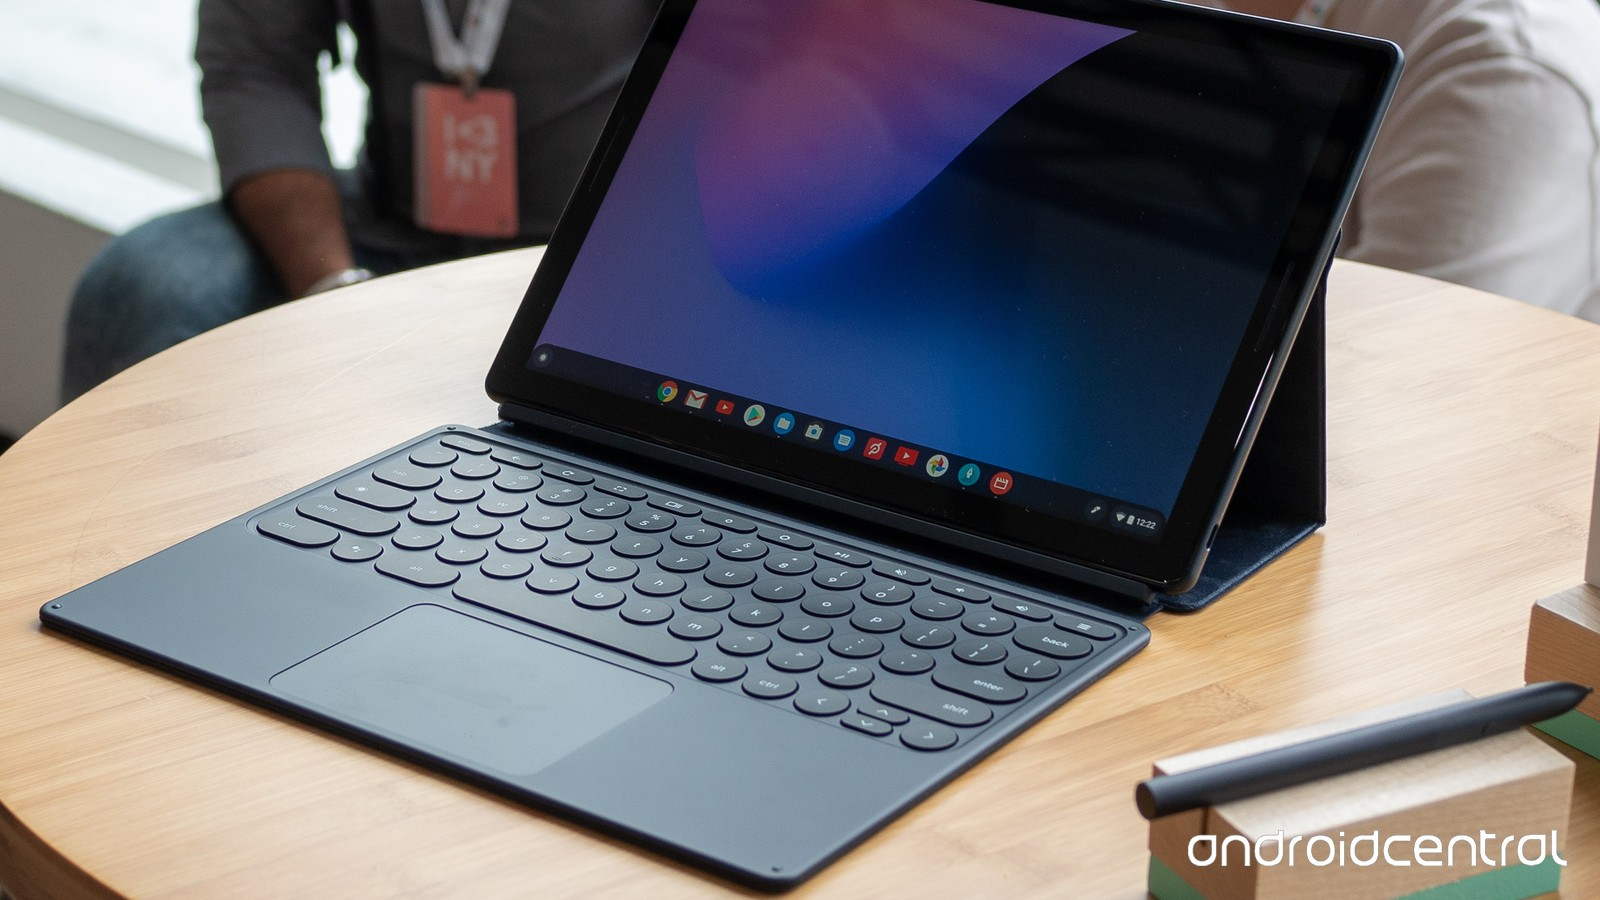 Chromebook - a toy or something else?